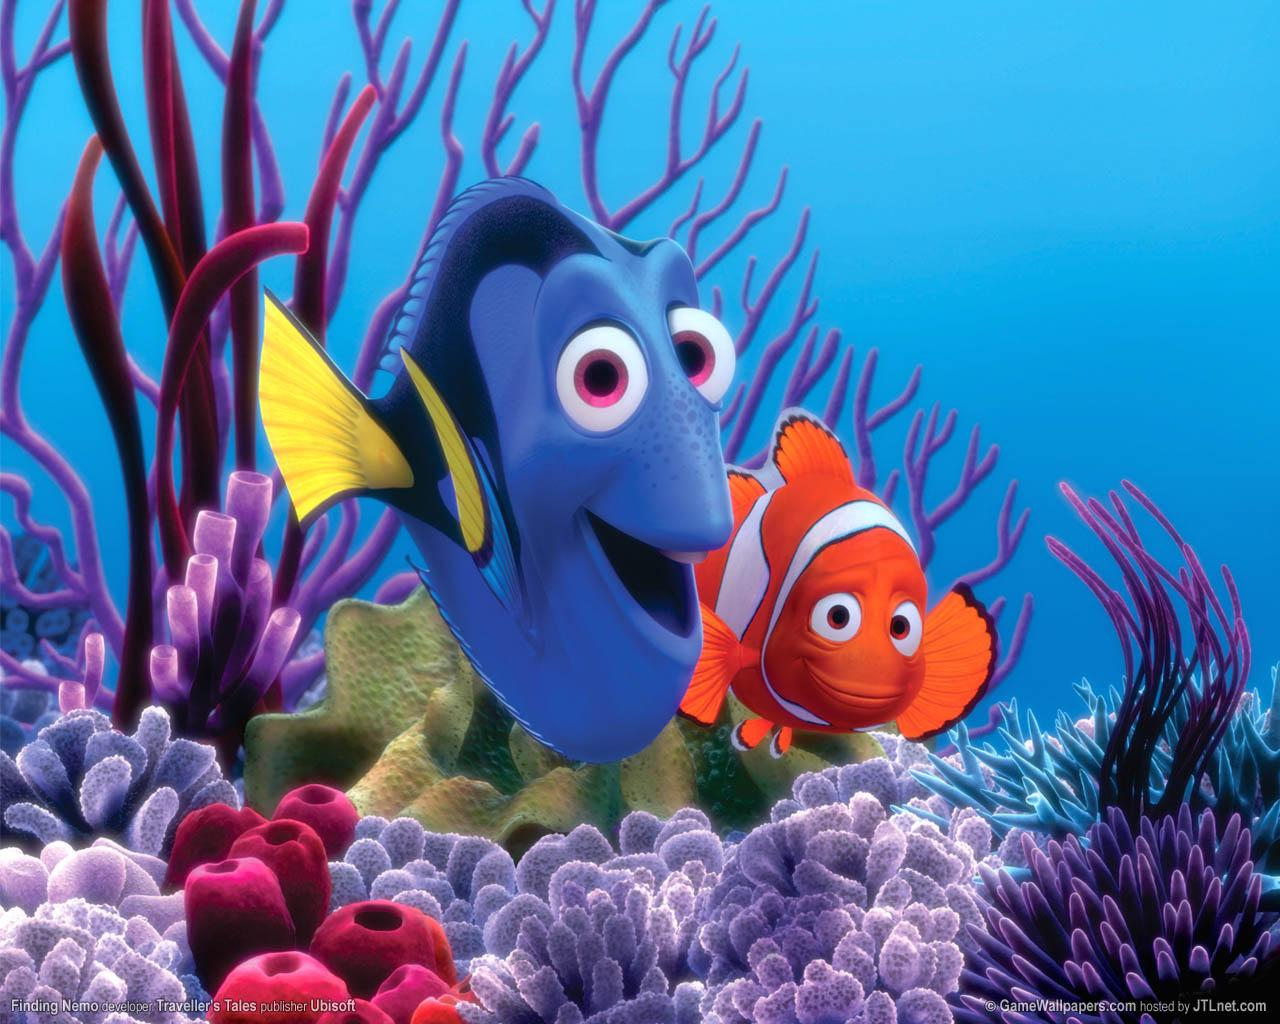 The box office will be swimming with the fishes this weekend according